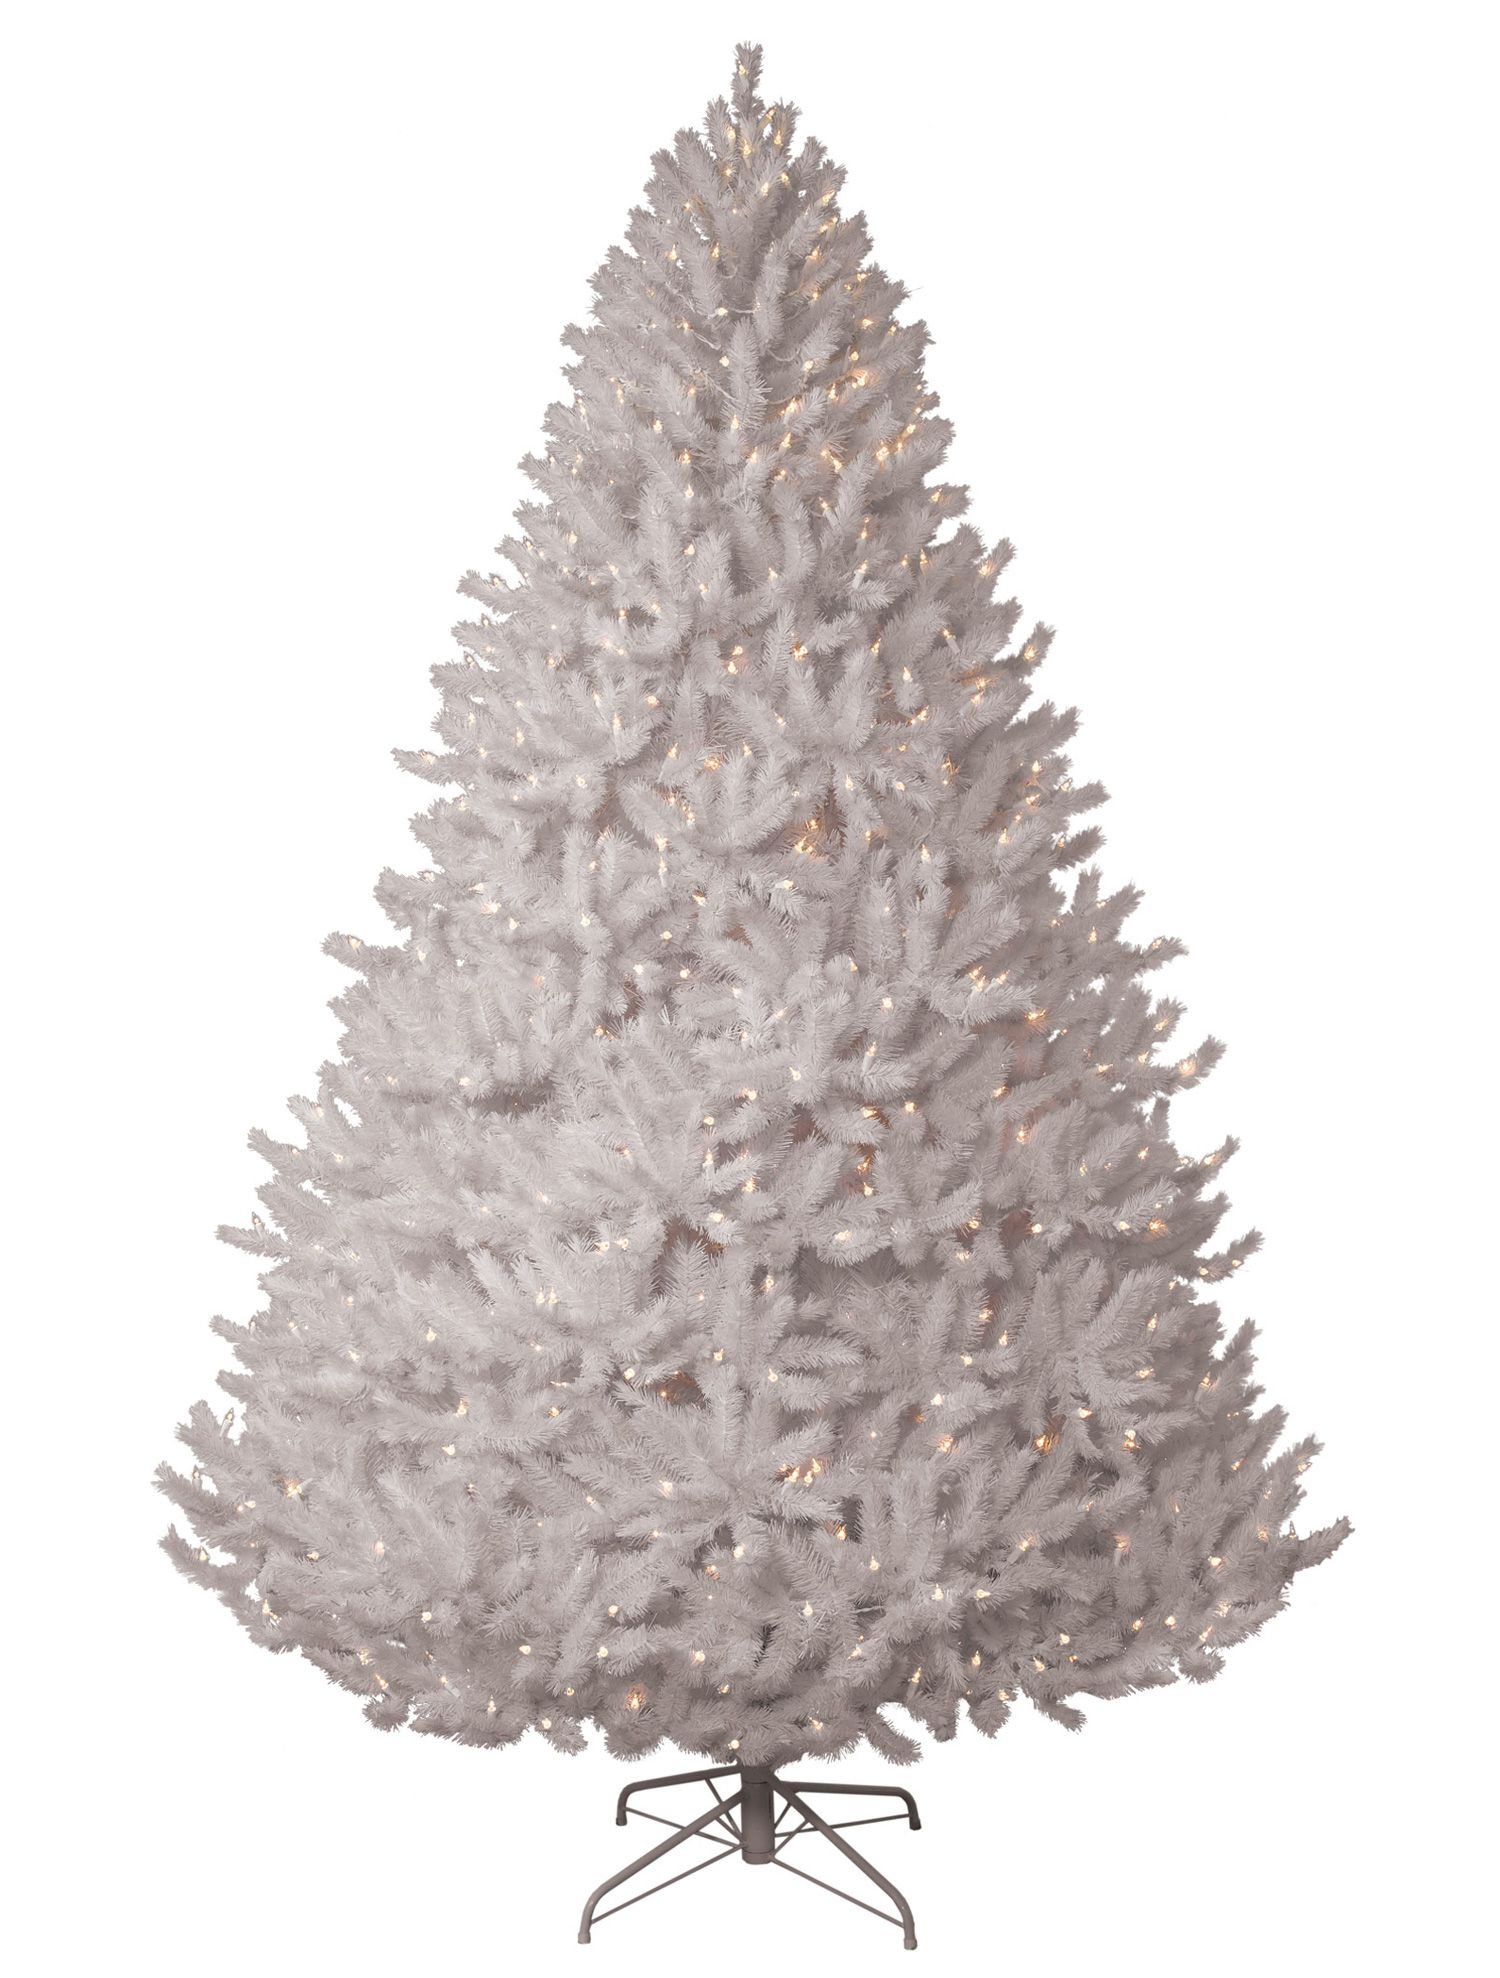 Pikes Peak White Artificial Christmas Trees Online Balsam Hill